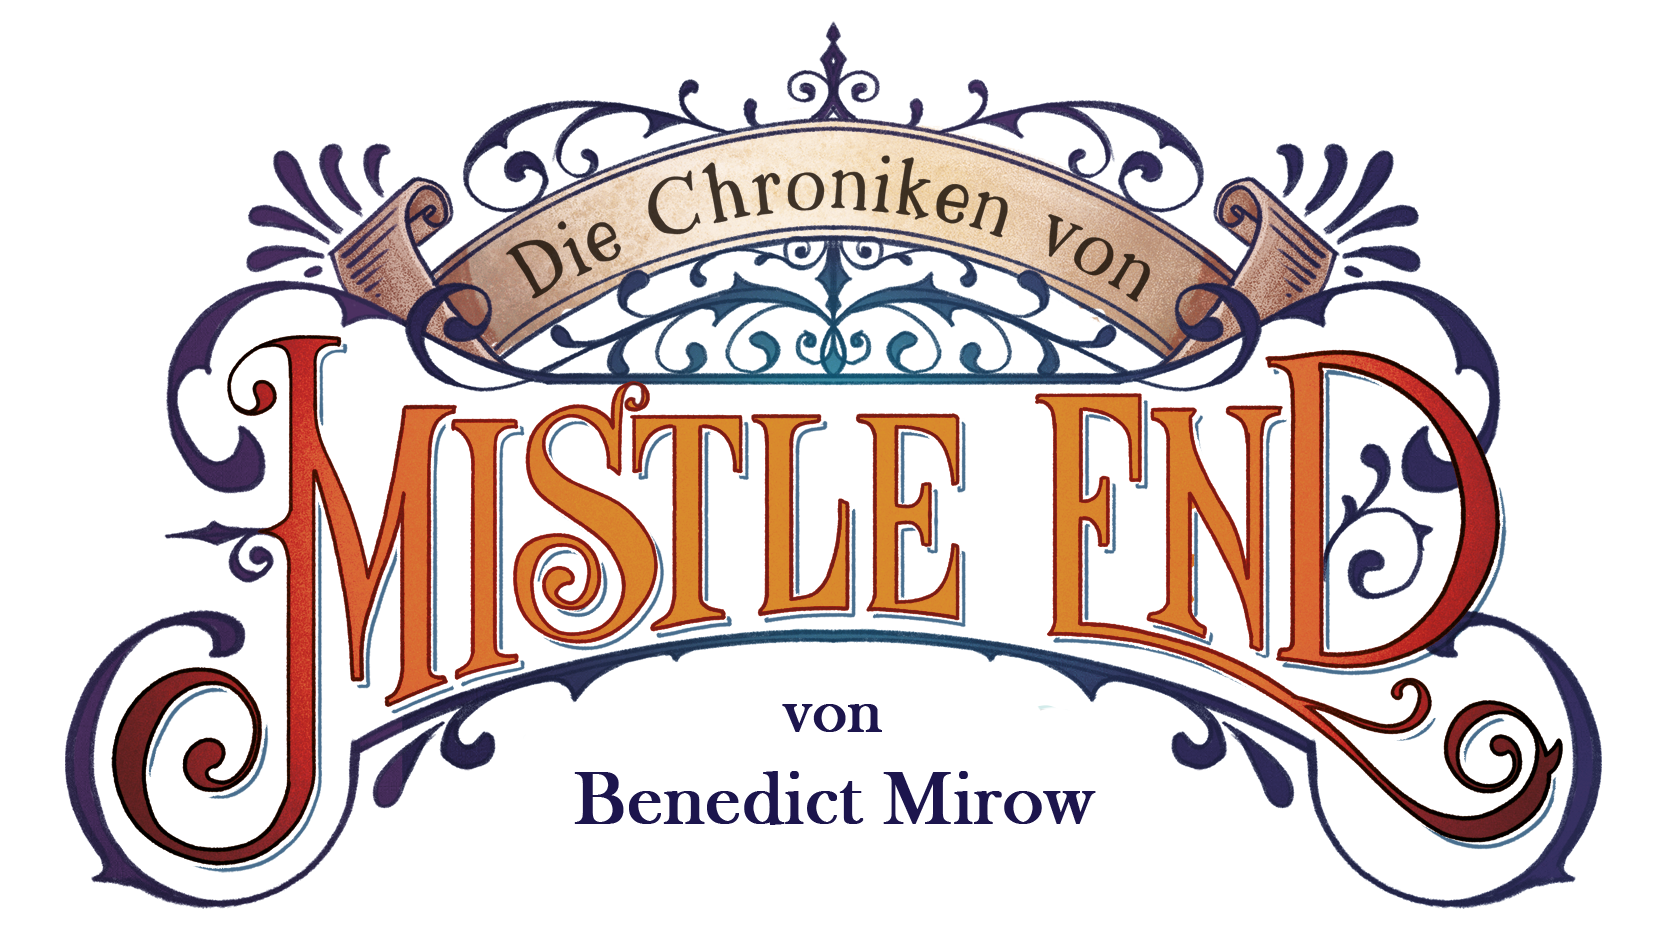 Die Chroniken von Mistle End